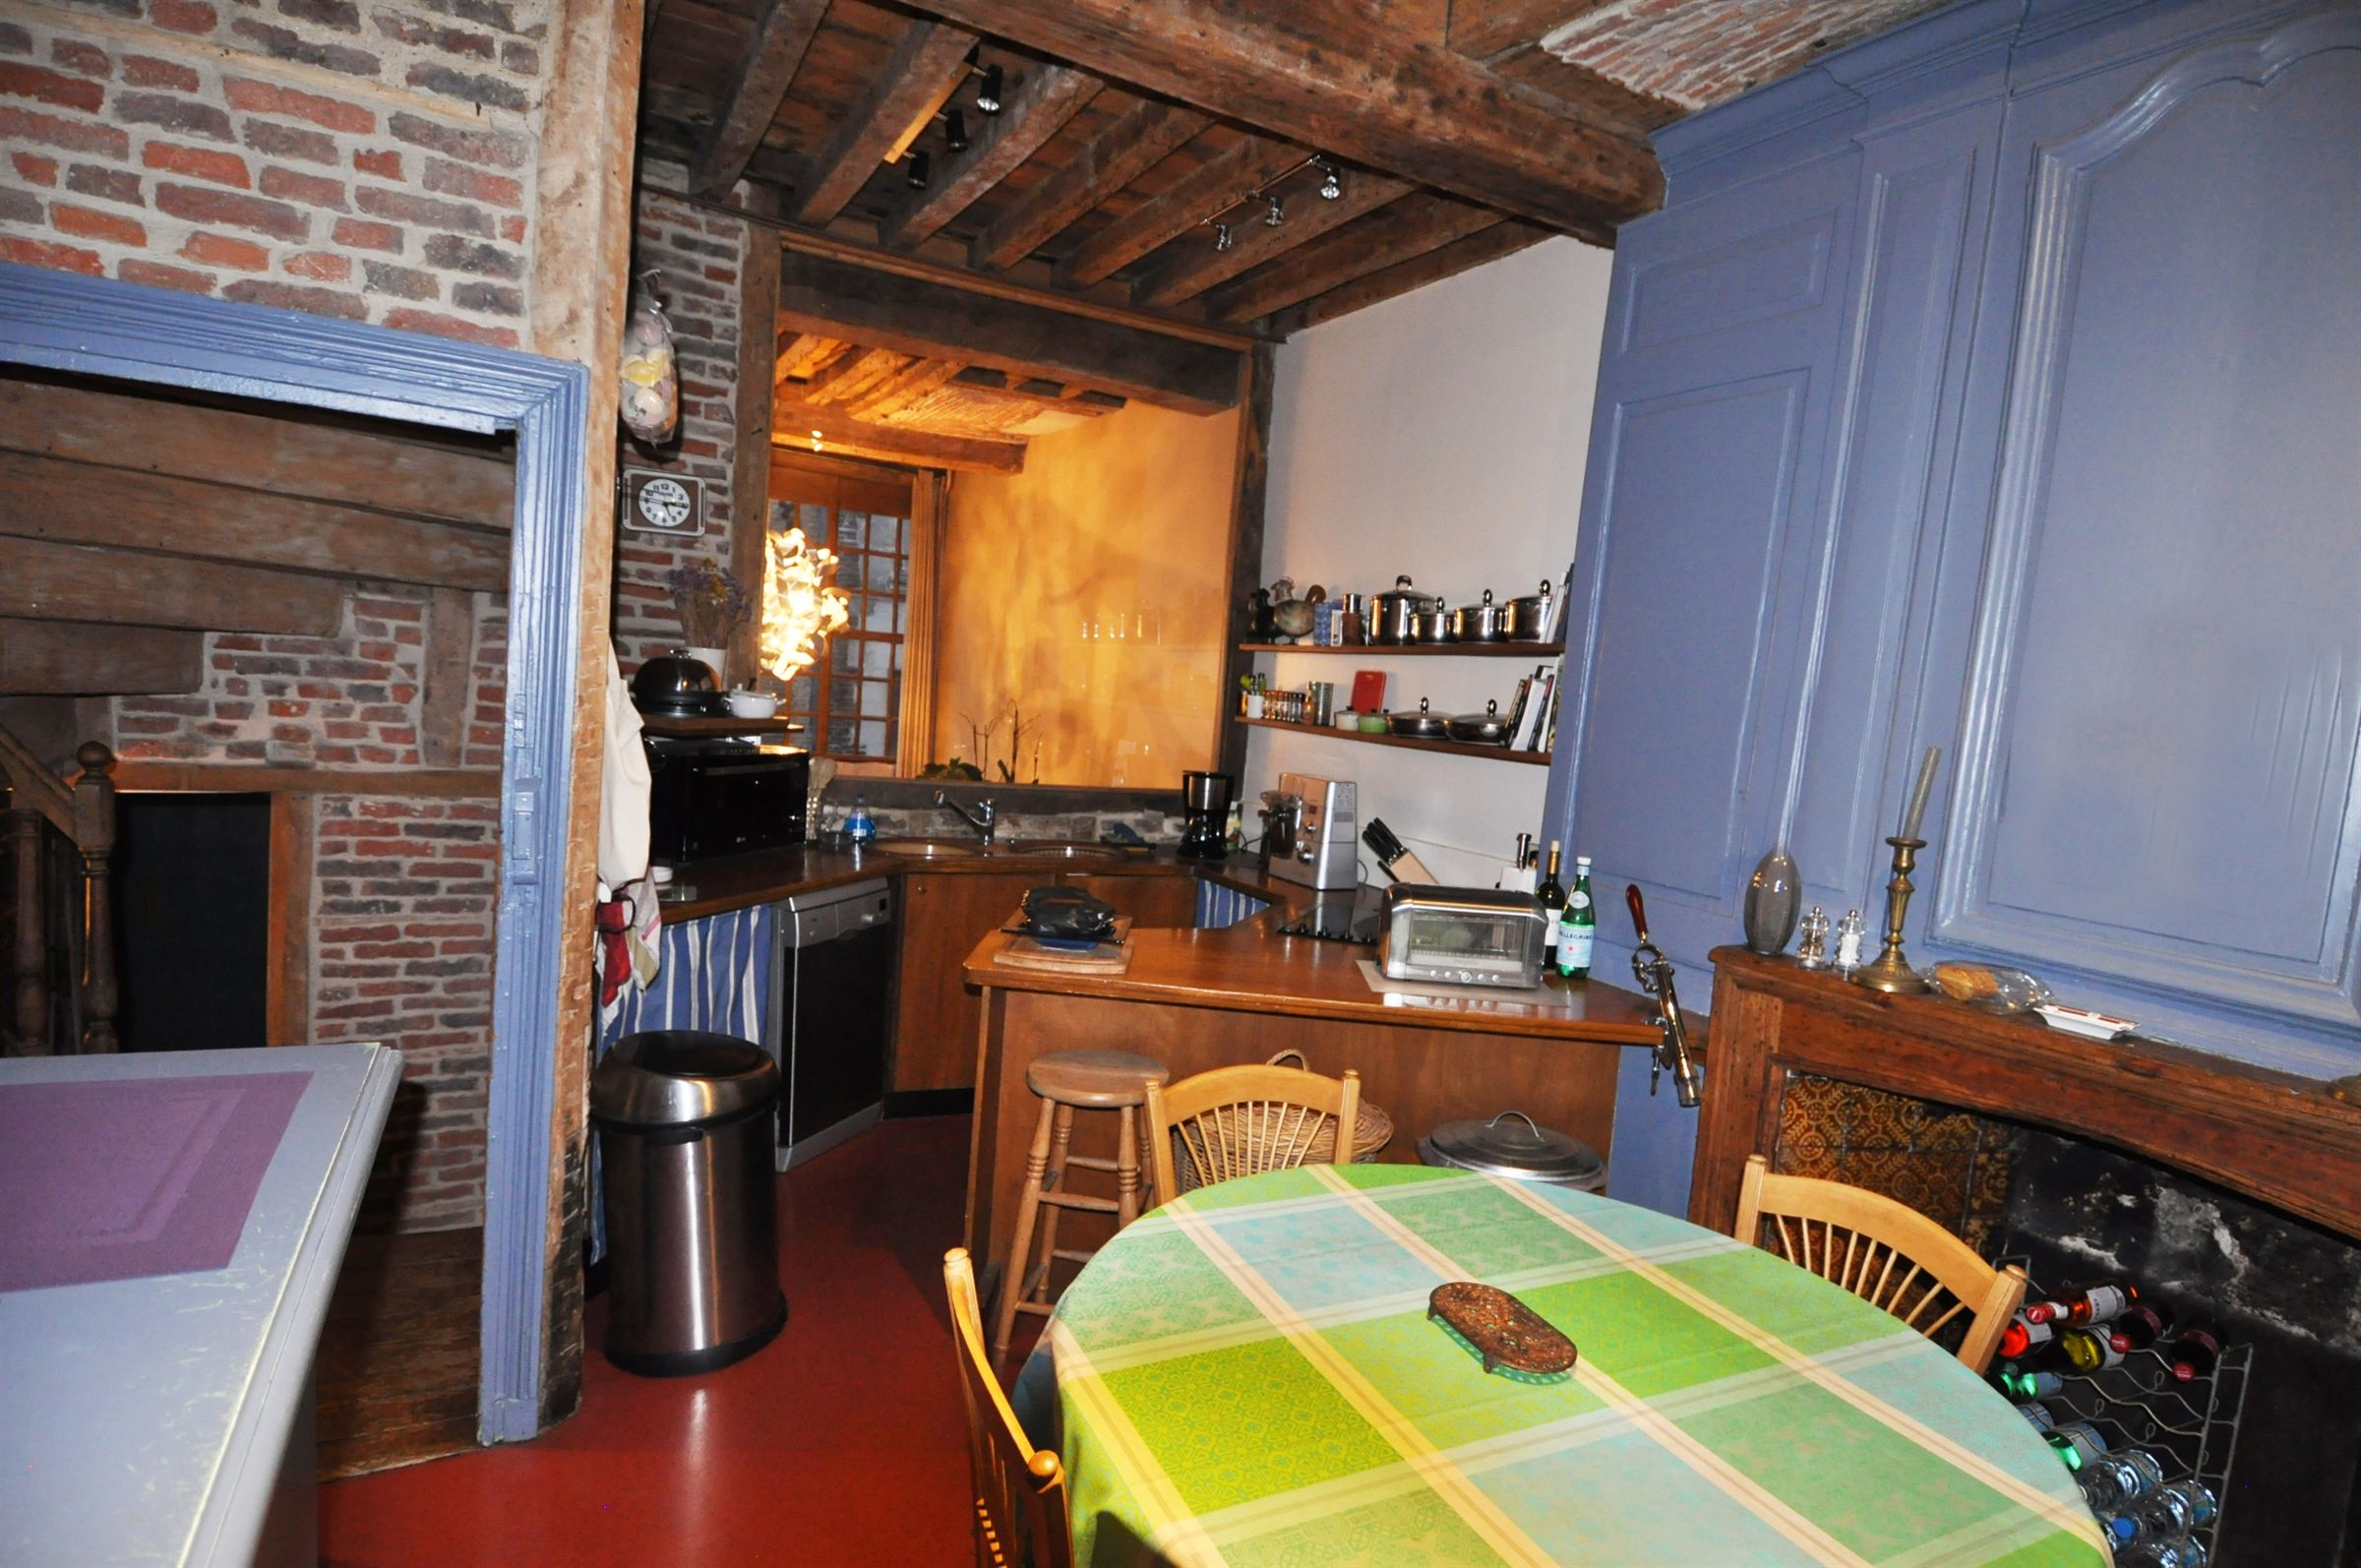 Property For Sale at HEART OF OLD LILLE, charming town house 140 m2 4 bedrooms